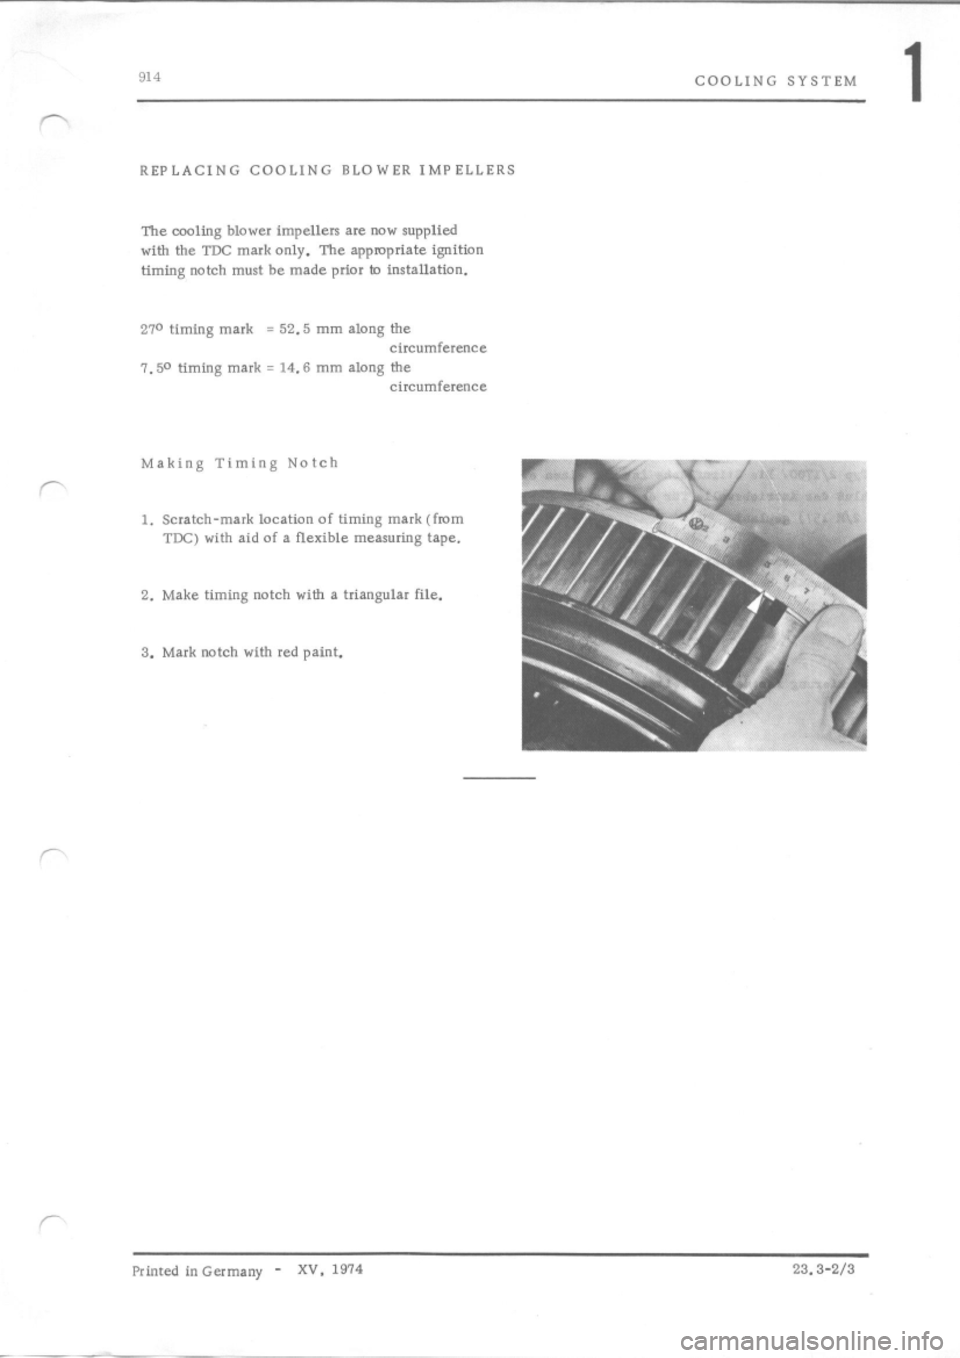 PORSCHE 914 1973 1.G Engine 4 Workshop Manual, Page 5